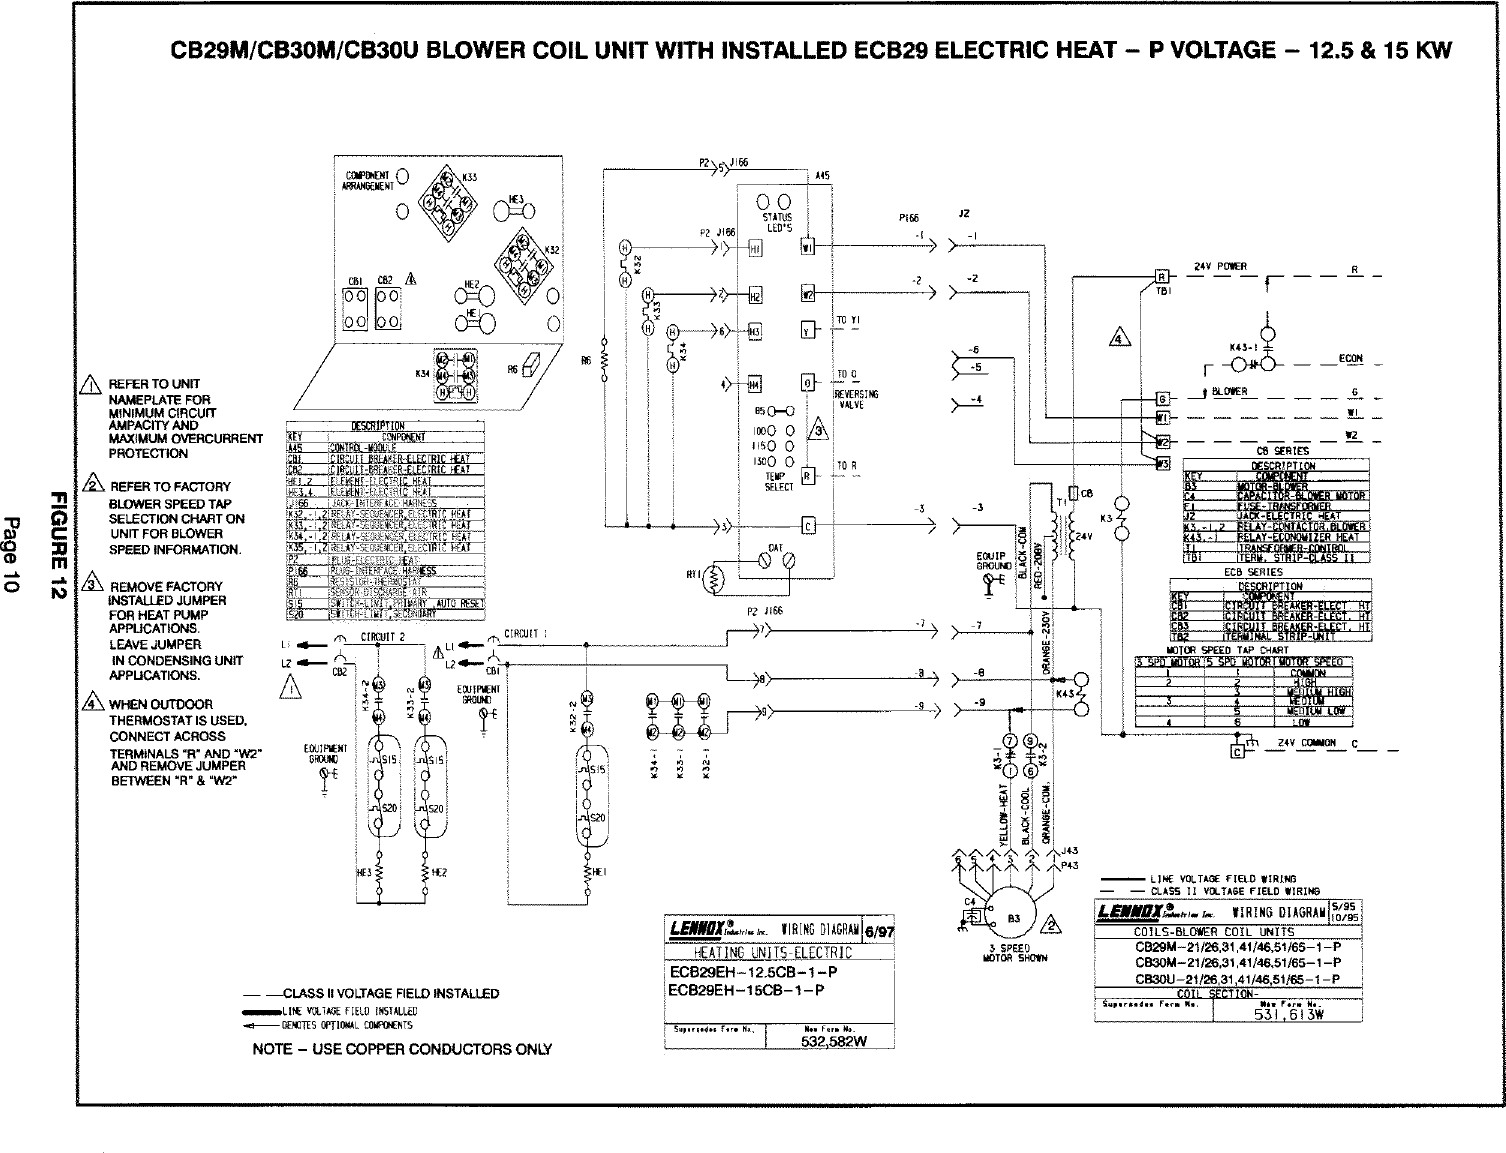 Lennox Air Handler Auxiliary Heater Kit Manual L0805584 Wiring Diagram Page 10 Of 12